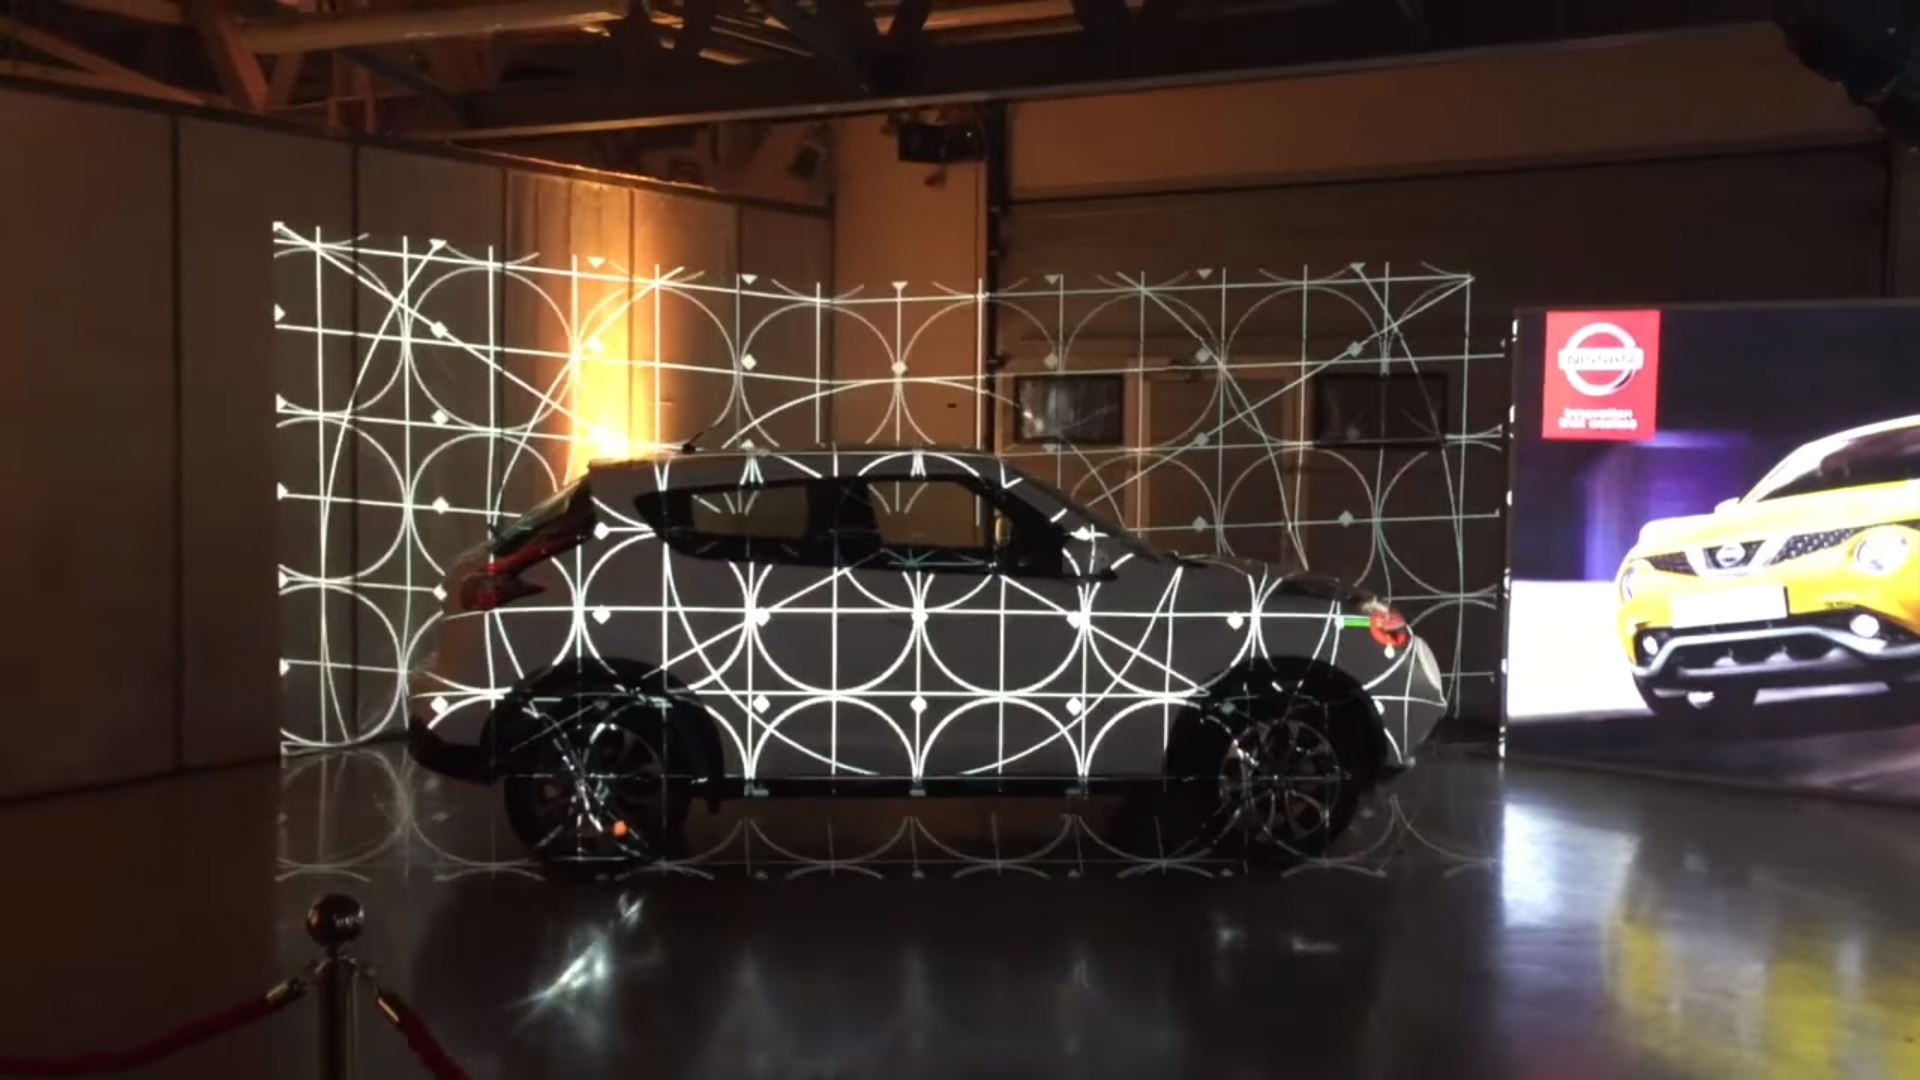 nissan eventagrate interactive projection mapping calibration